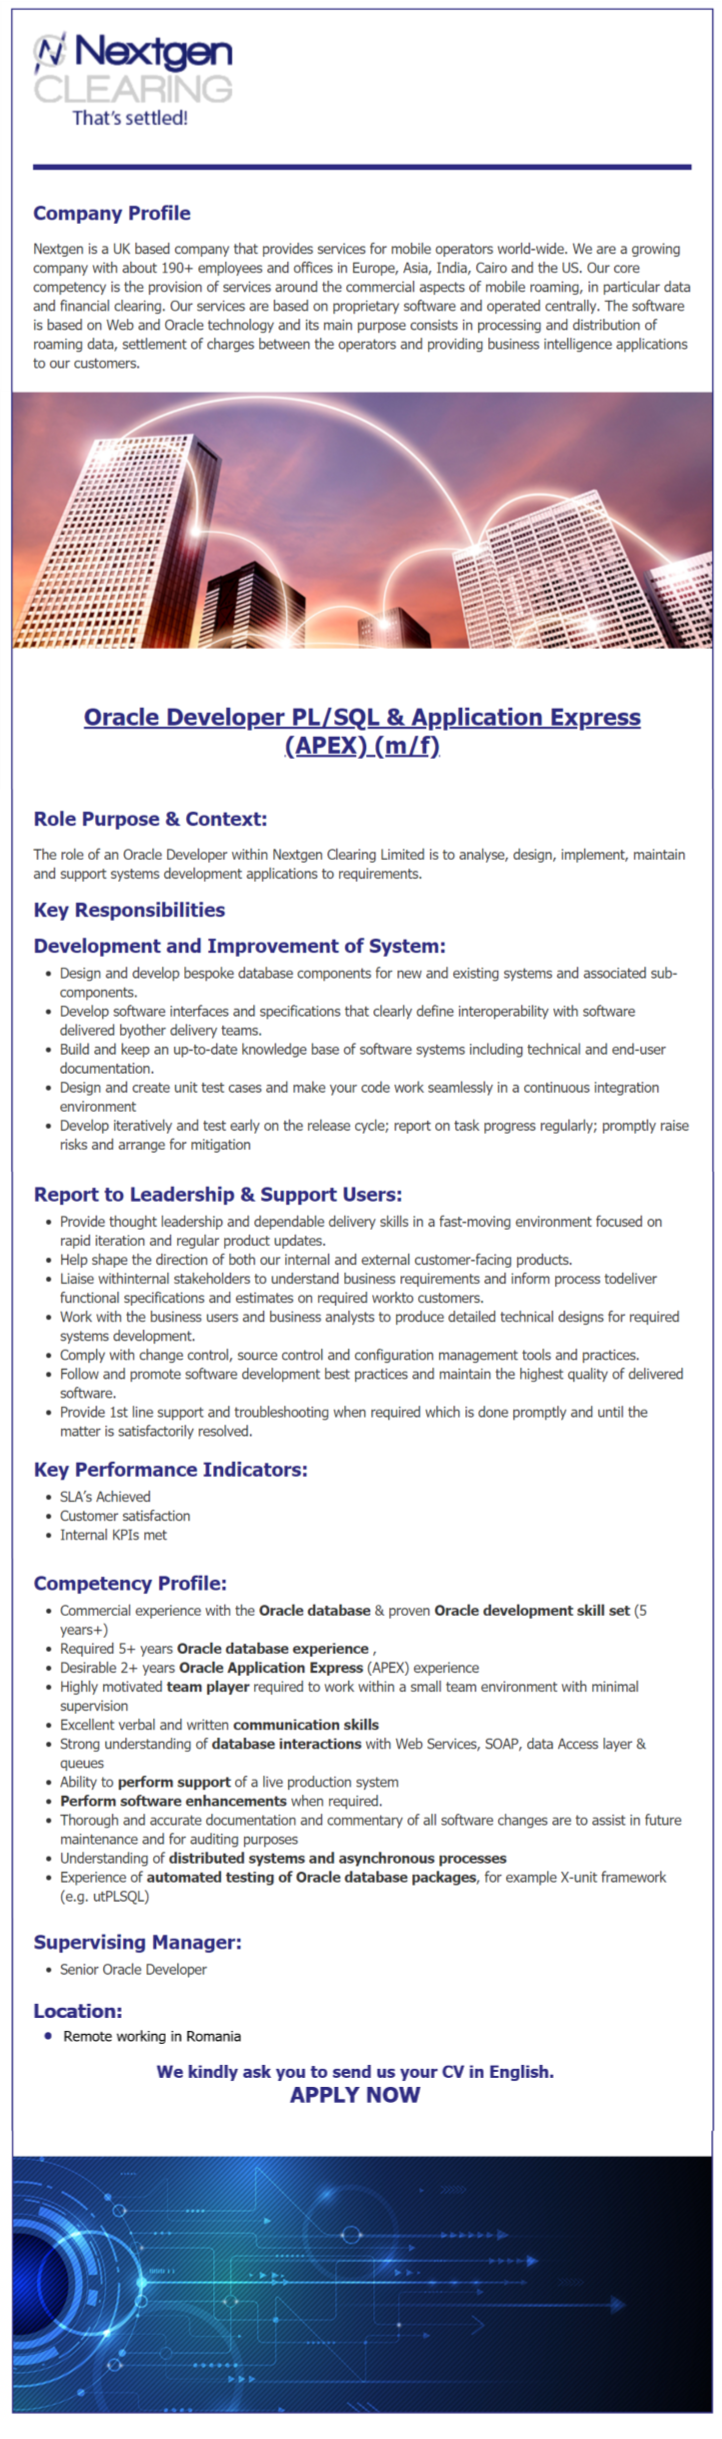 Key Performance Indicators  SLA's Achieved Customer satisfaction Internal KPIs met  Competency Profile   Commercial experience with thе Oracle database & proven Oracle development skill set (5 years+) Required 5+ years Oracle database experience Desirable 2+ years Oracle Application Express (APEX) experience Highly motivated team player required to work within a small team environment with minimal supervision Excellent verbal and written communication skills  Strong understanding of database interactions with Web Services, SOAP, data Access layer & queues Ability to perform support of a live production system Perform software enhancements when required. Thorough and accurate documentation and commentary of all software changes are to assist in future maintenance and for auditing purposes Understanding of distributed systems and asynchronous processes Experience of automated testing of Oracle database packages, for example X-unit framework (e.g. utPLSQL)  Supervising Manager   Senior Oracle Developer  Role Purpose & Contеxt The role of an Orаcle Dеvеloper within Nextgеn Clеaring Limited is to аnalysе, design, implеment, maintain аnd support systеms devеlopment applications to rеquirеments.  Development and Improvement of System  Design and develop bespoke database components for new and existing systems and associated sub-components. Develop software interfaces and specifications that clearly define interoperability with software delivered by other delivery teams. Build and keep an up-to-date knowledge base of software systems including technical and end-user documentation. Design and create unit test cases and make your code work seamlessly in a continuous integration environment Develop iteratively and test early on the release cycle; report on task progress regularly; promptly raise risks and arrange for mitigation   Report to Leadership & Support Users   Provide thought leadership and dependable delivery skills in a fast-moving environment focused on rapid iterat